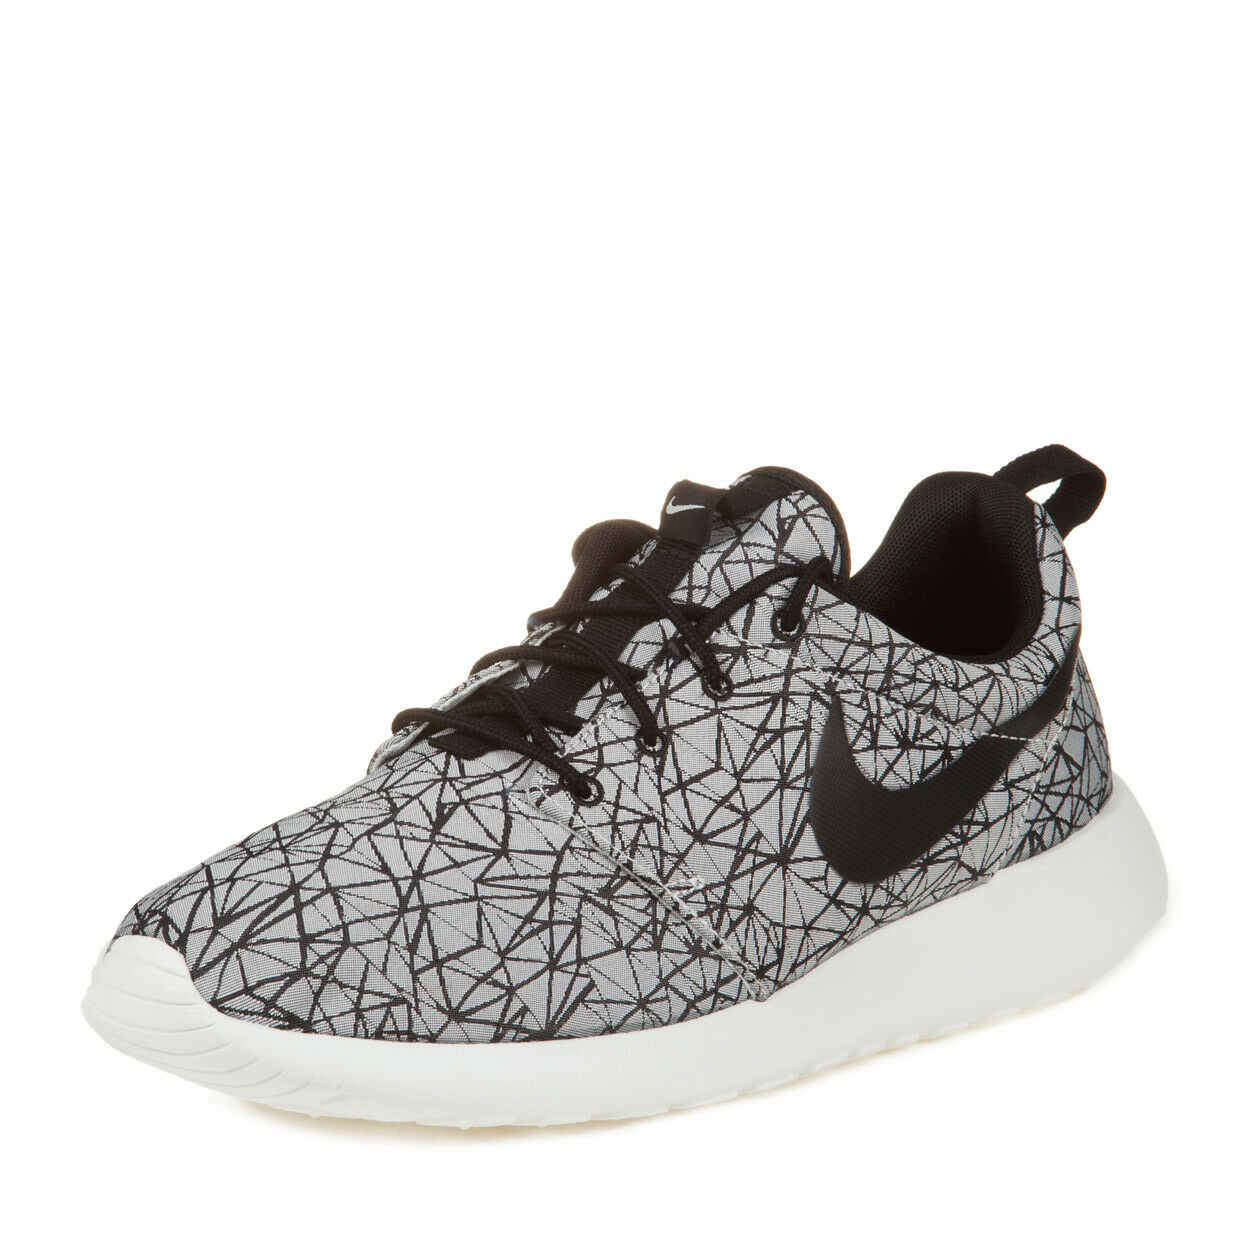 nike d'homme nike lunarepic flyknit en chaussures d'homme nike taille 12 d6dabc